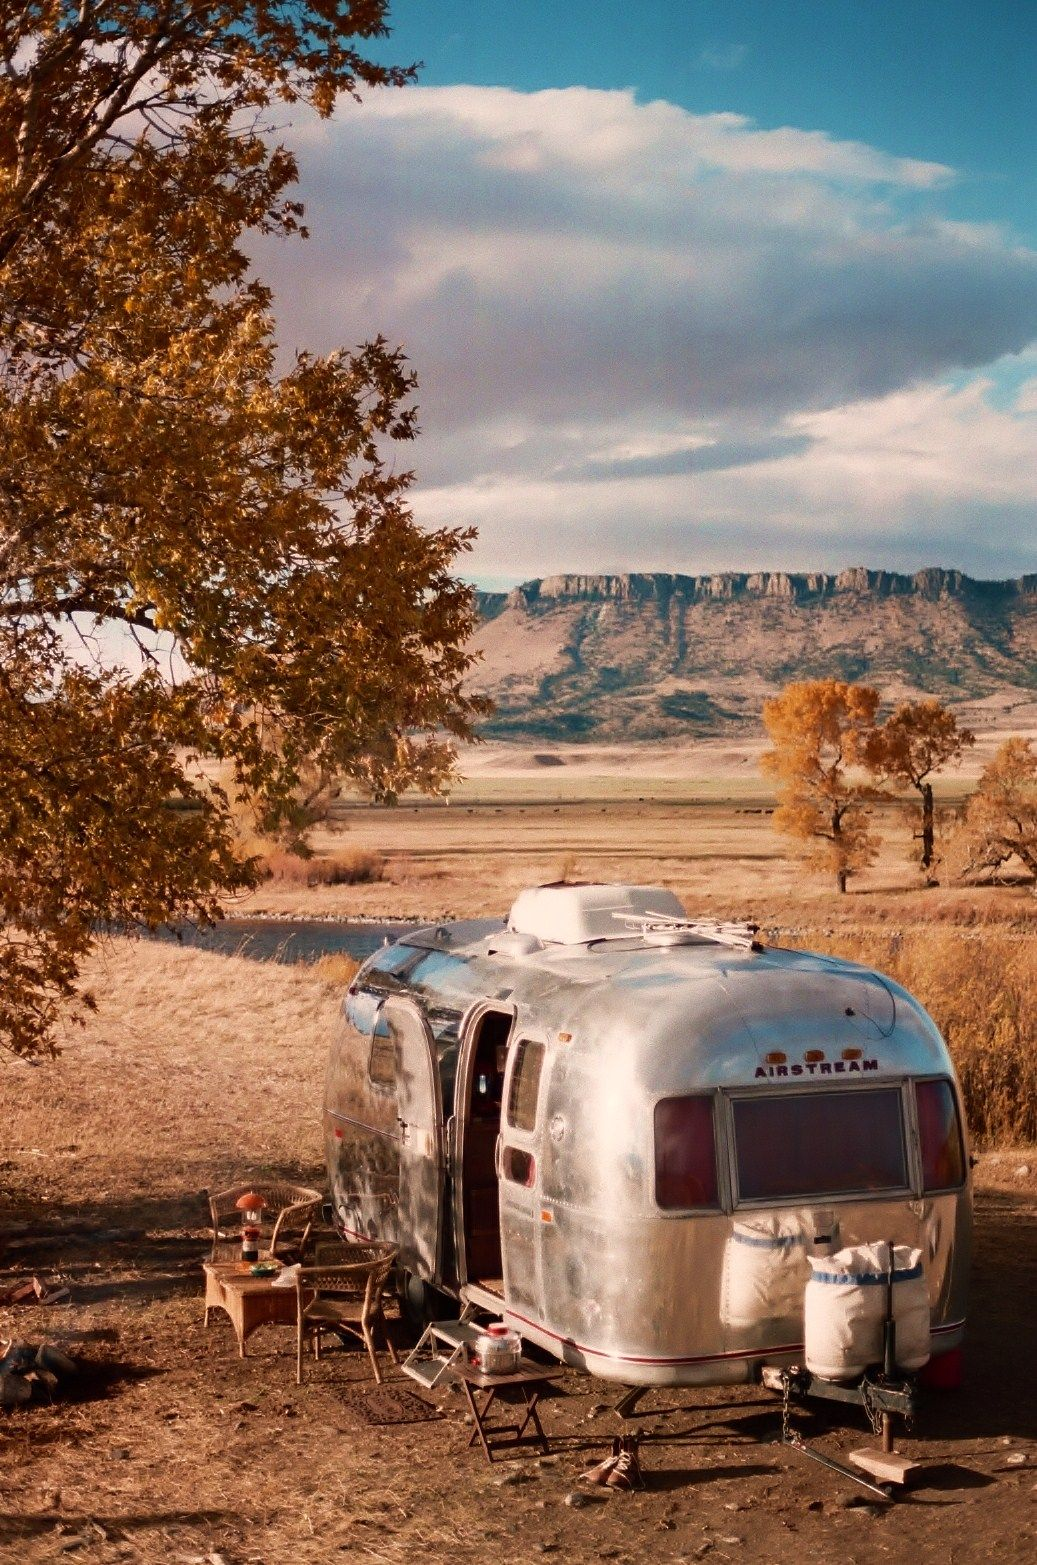 Airstream glamping rental and delivery starting summer